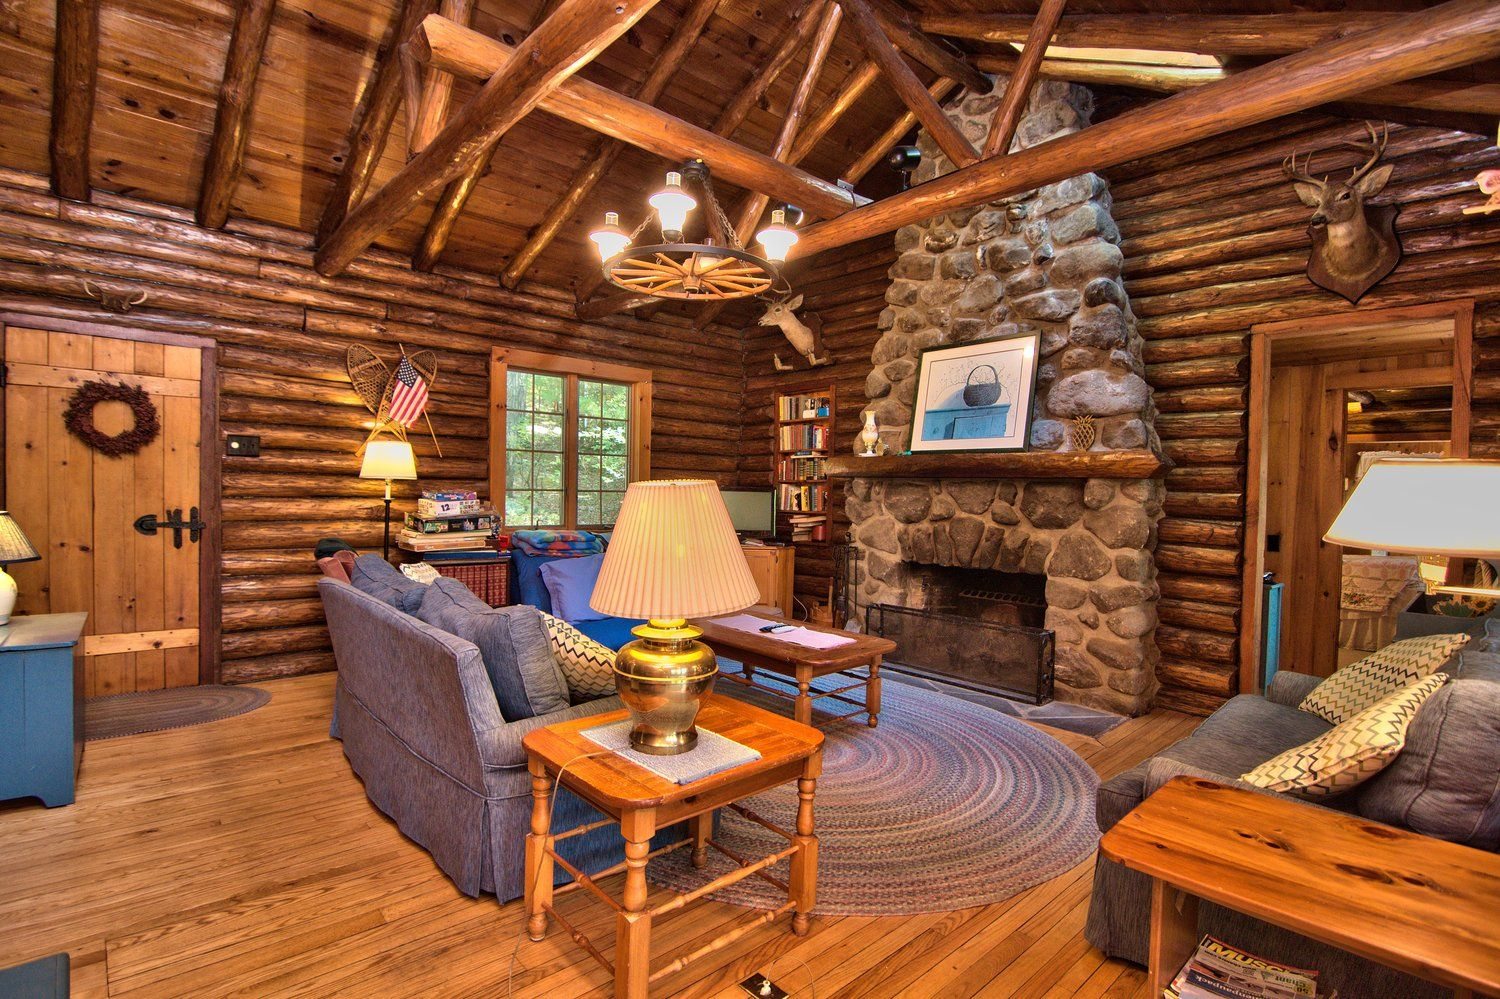 Another great shot of the living room in this lake